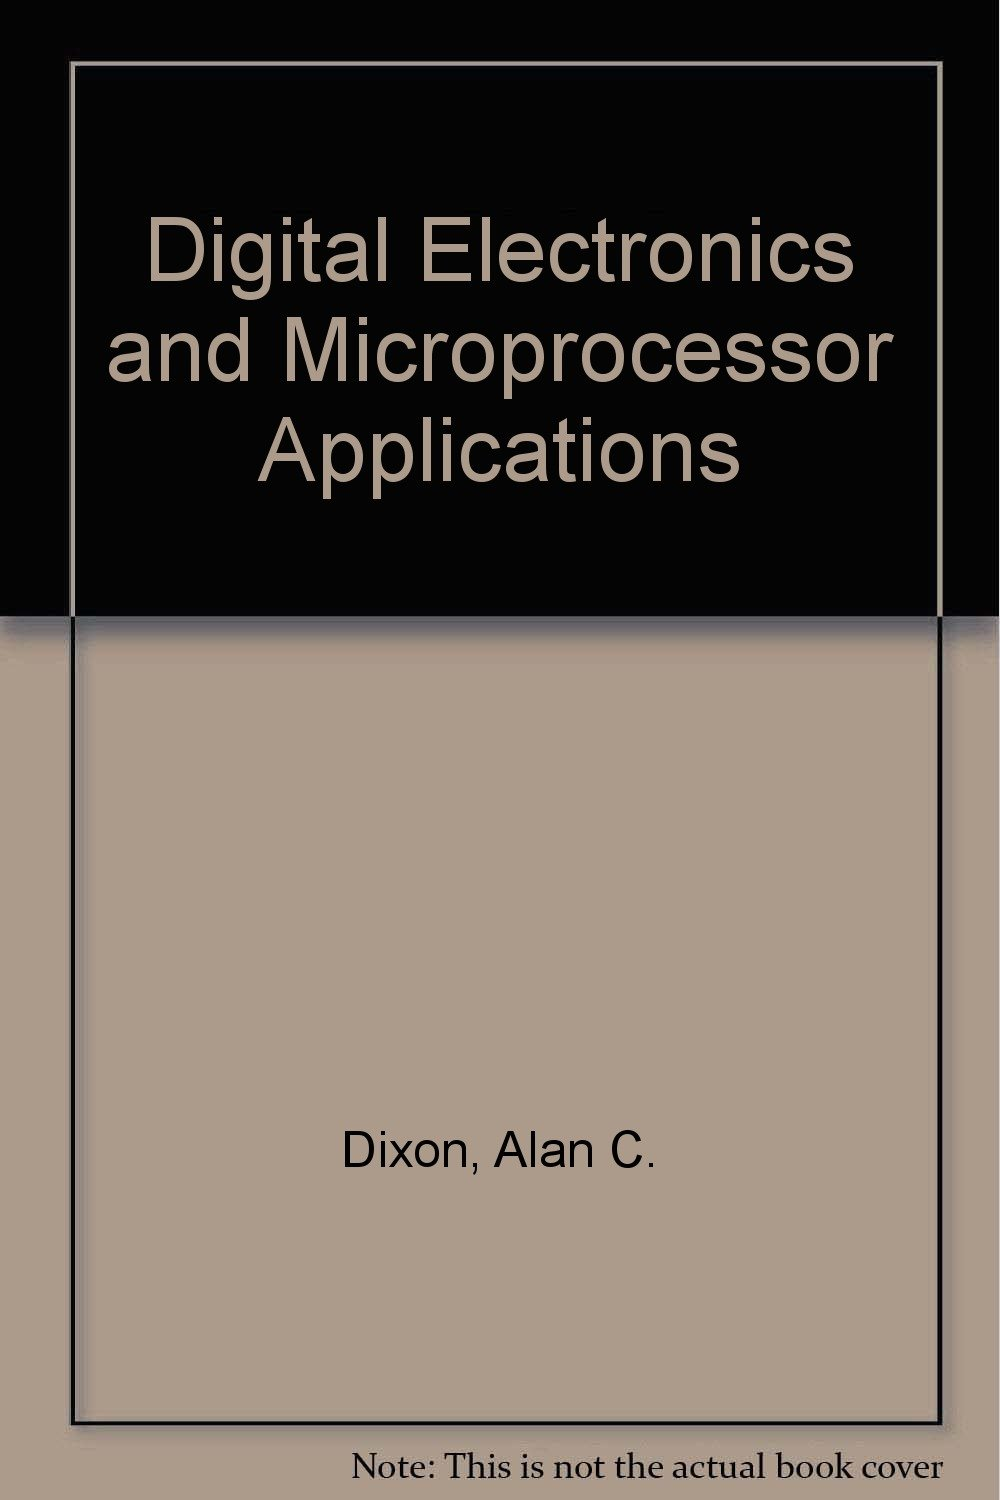 Digital Electronics and Microprocessor Applications